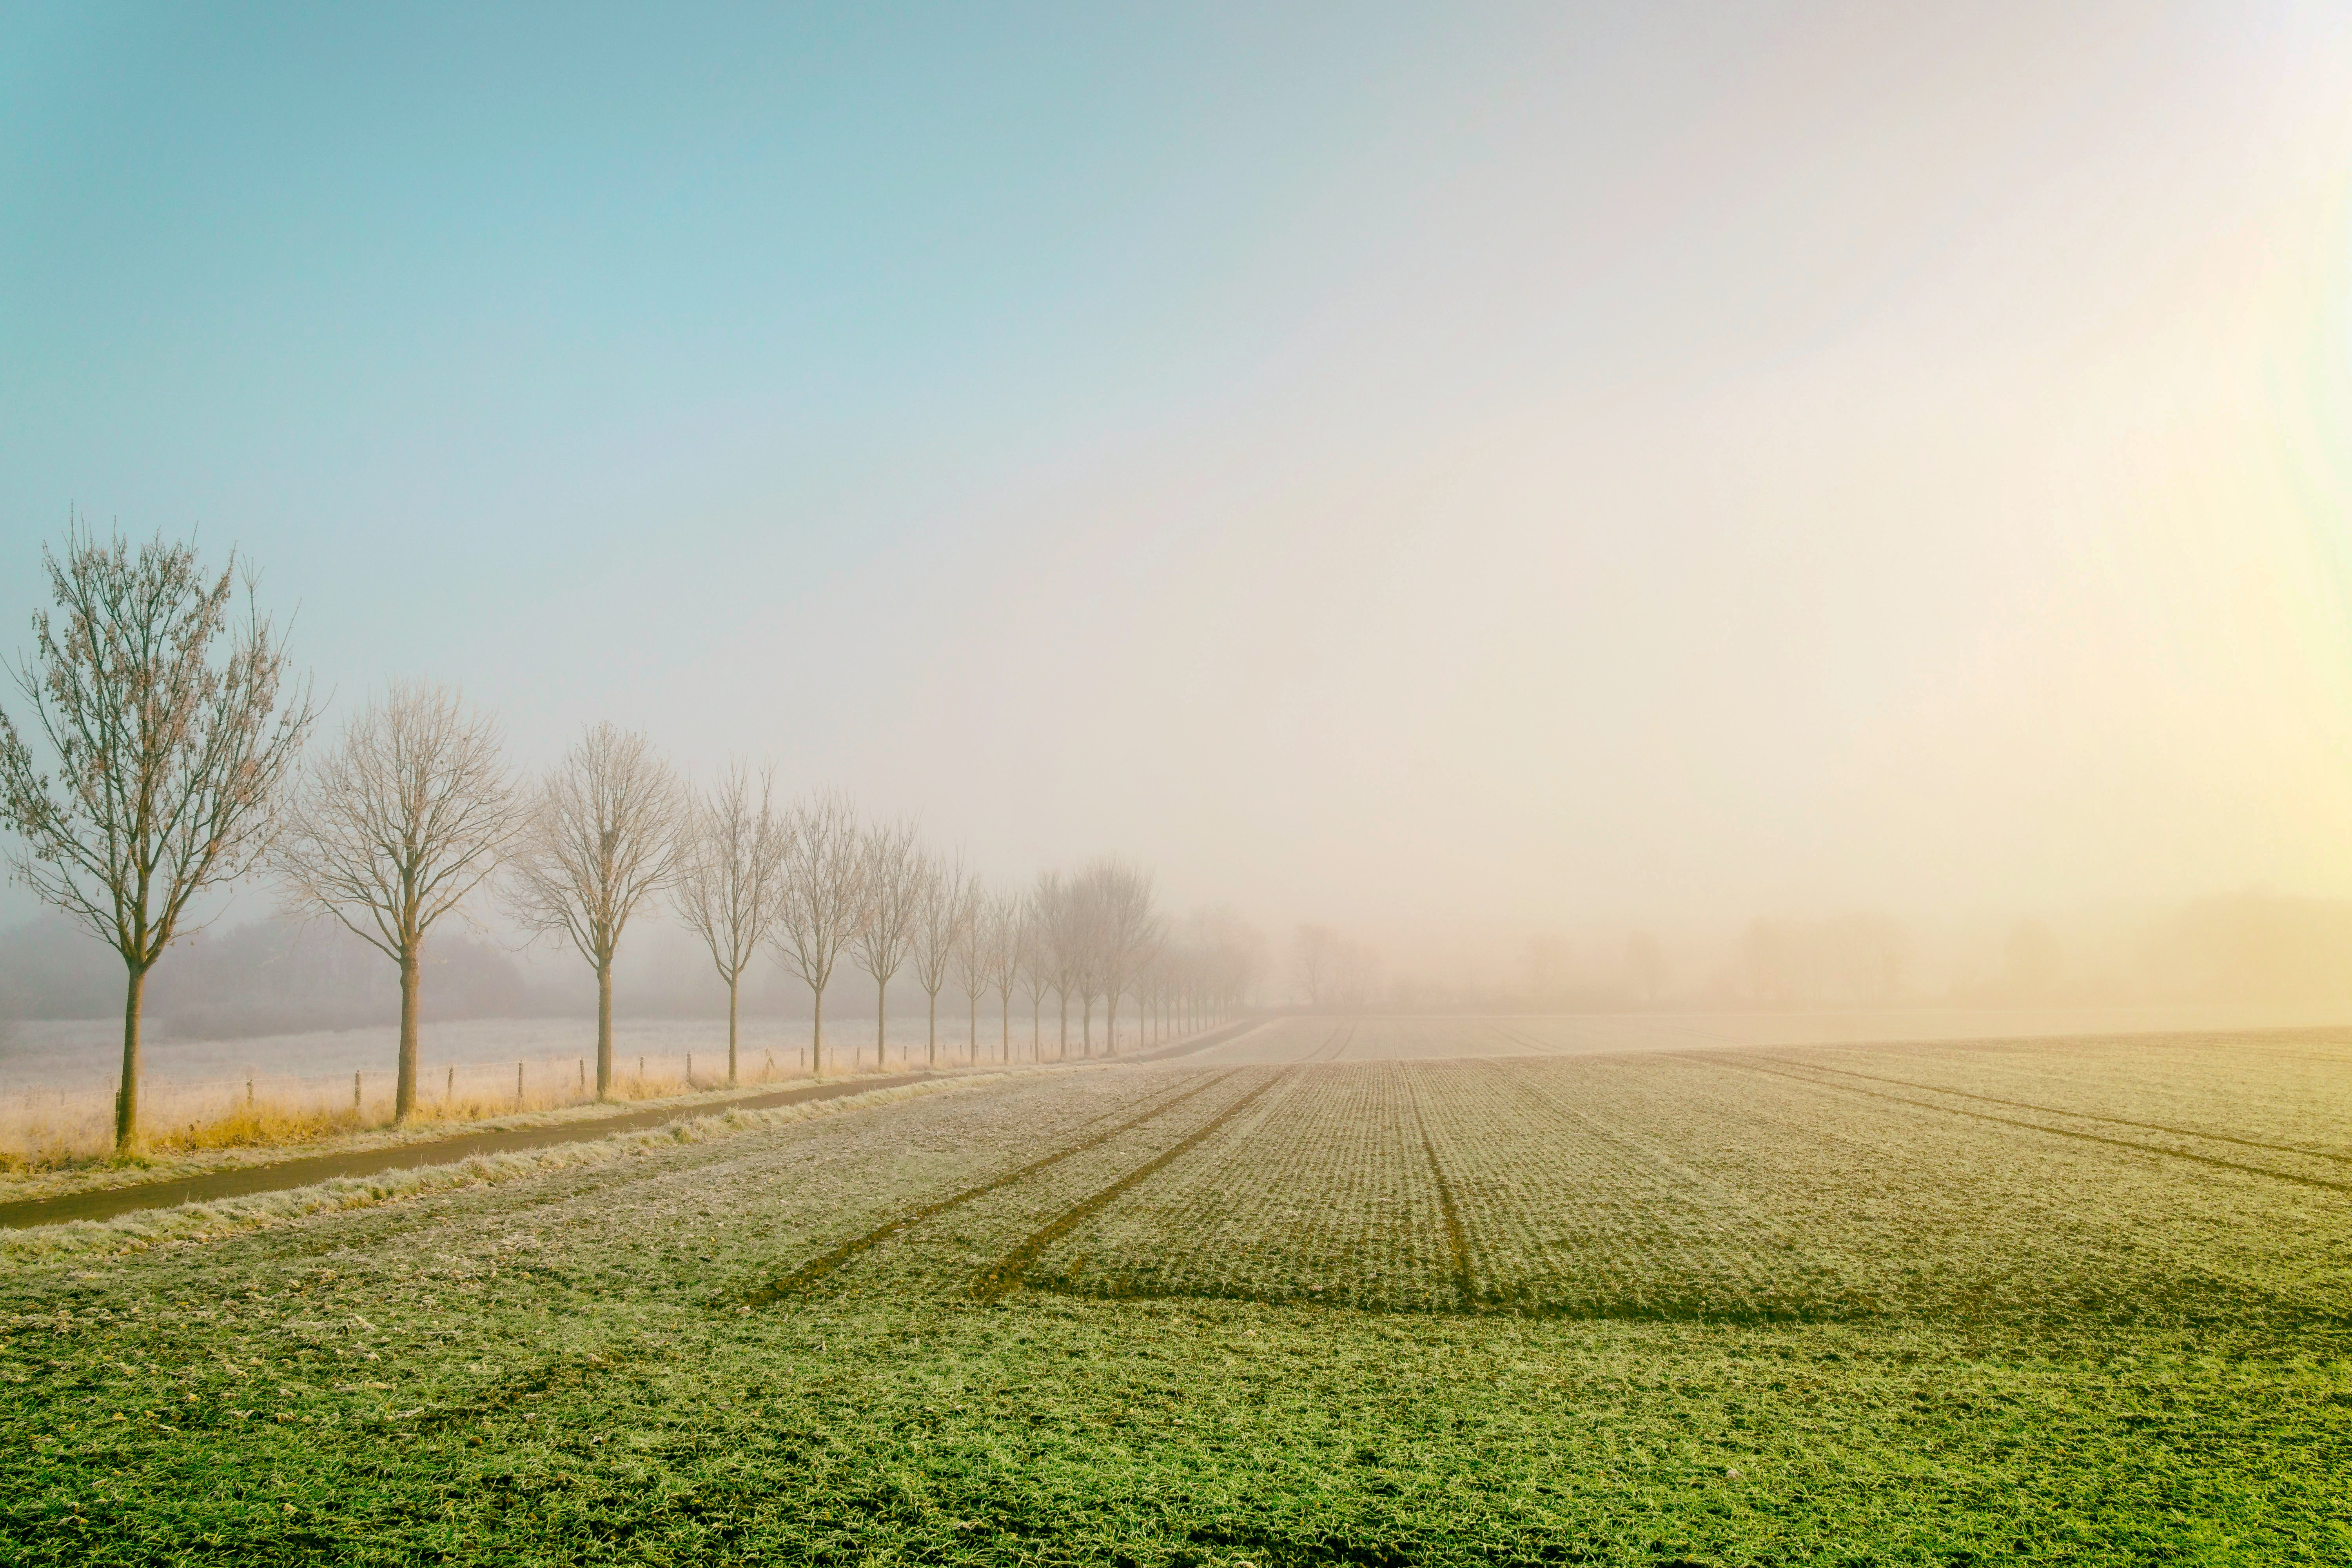 Bright and sunny farmfield in Entenfang